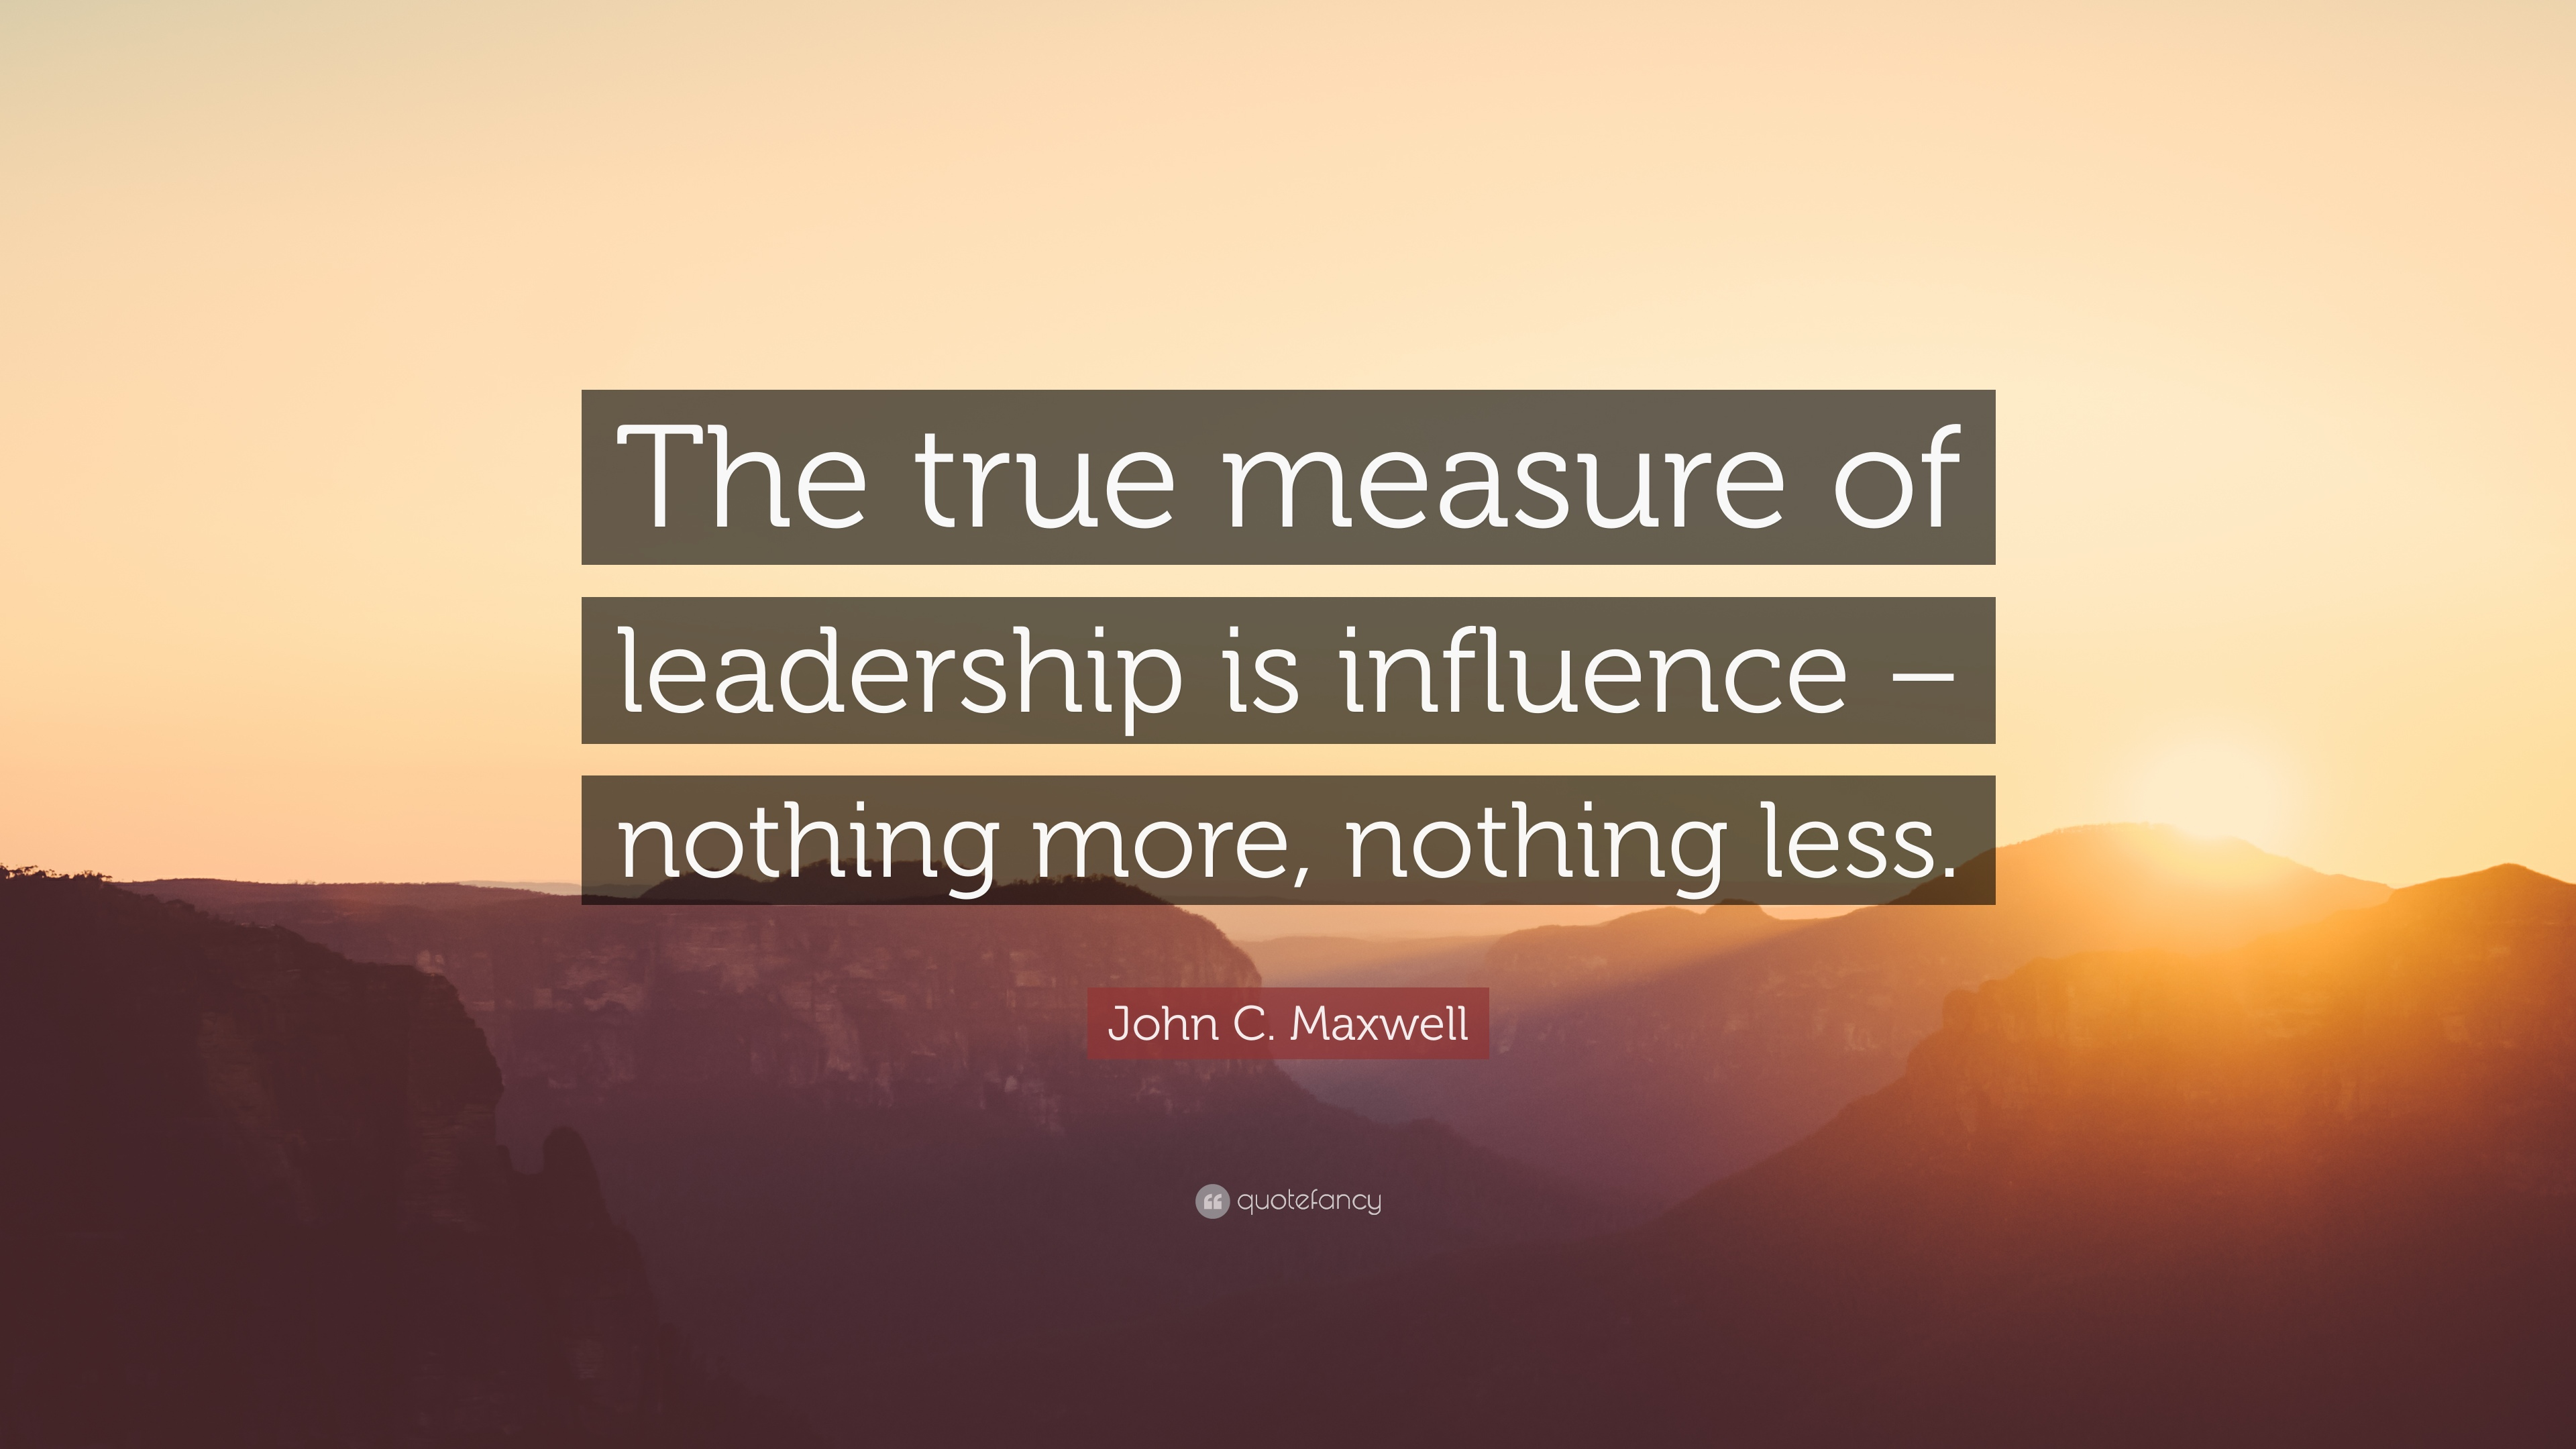 an essay on the true measure of a leader and leadership This paper is an examination of the requirements for effective servant leadership by individuals who share a passion for people with a drive to fulfill a purpose.